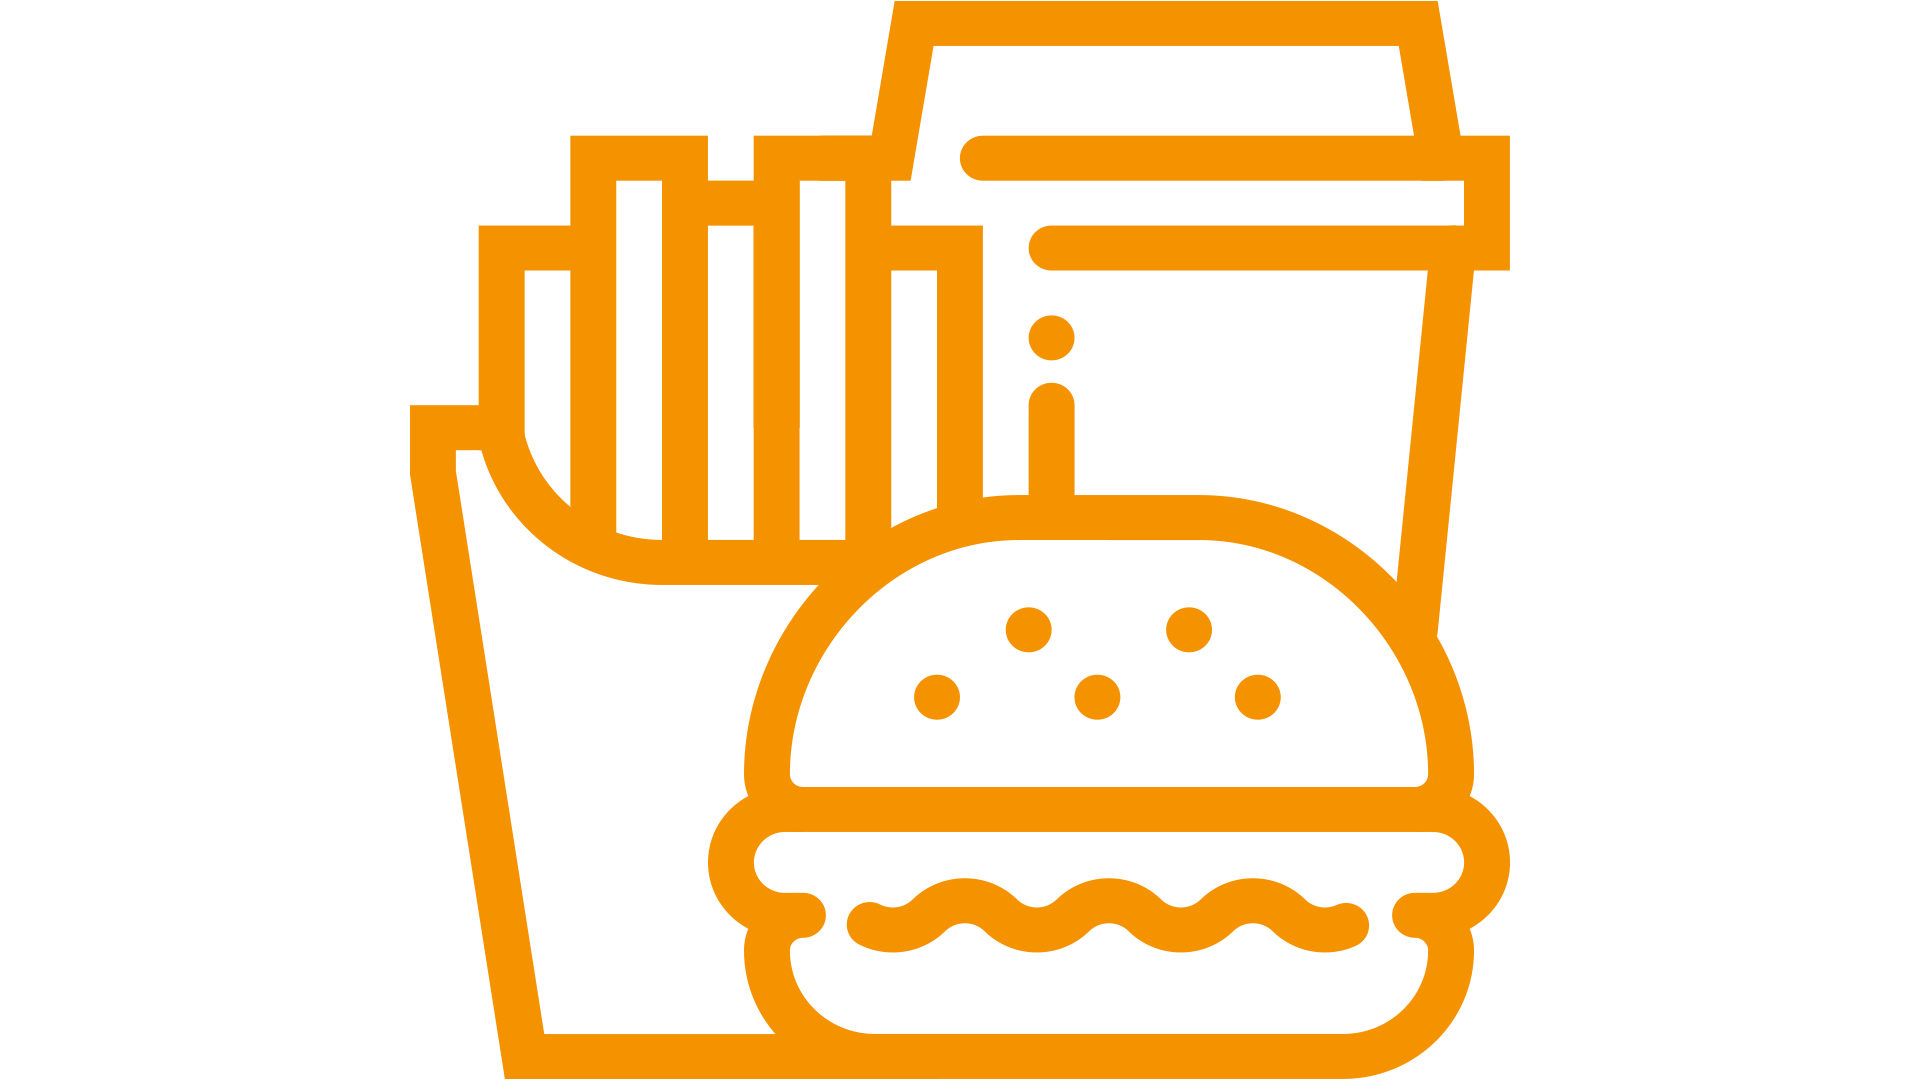 pictogram of a fastfood